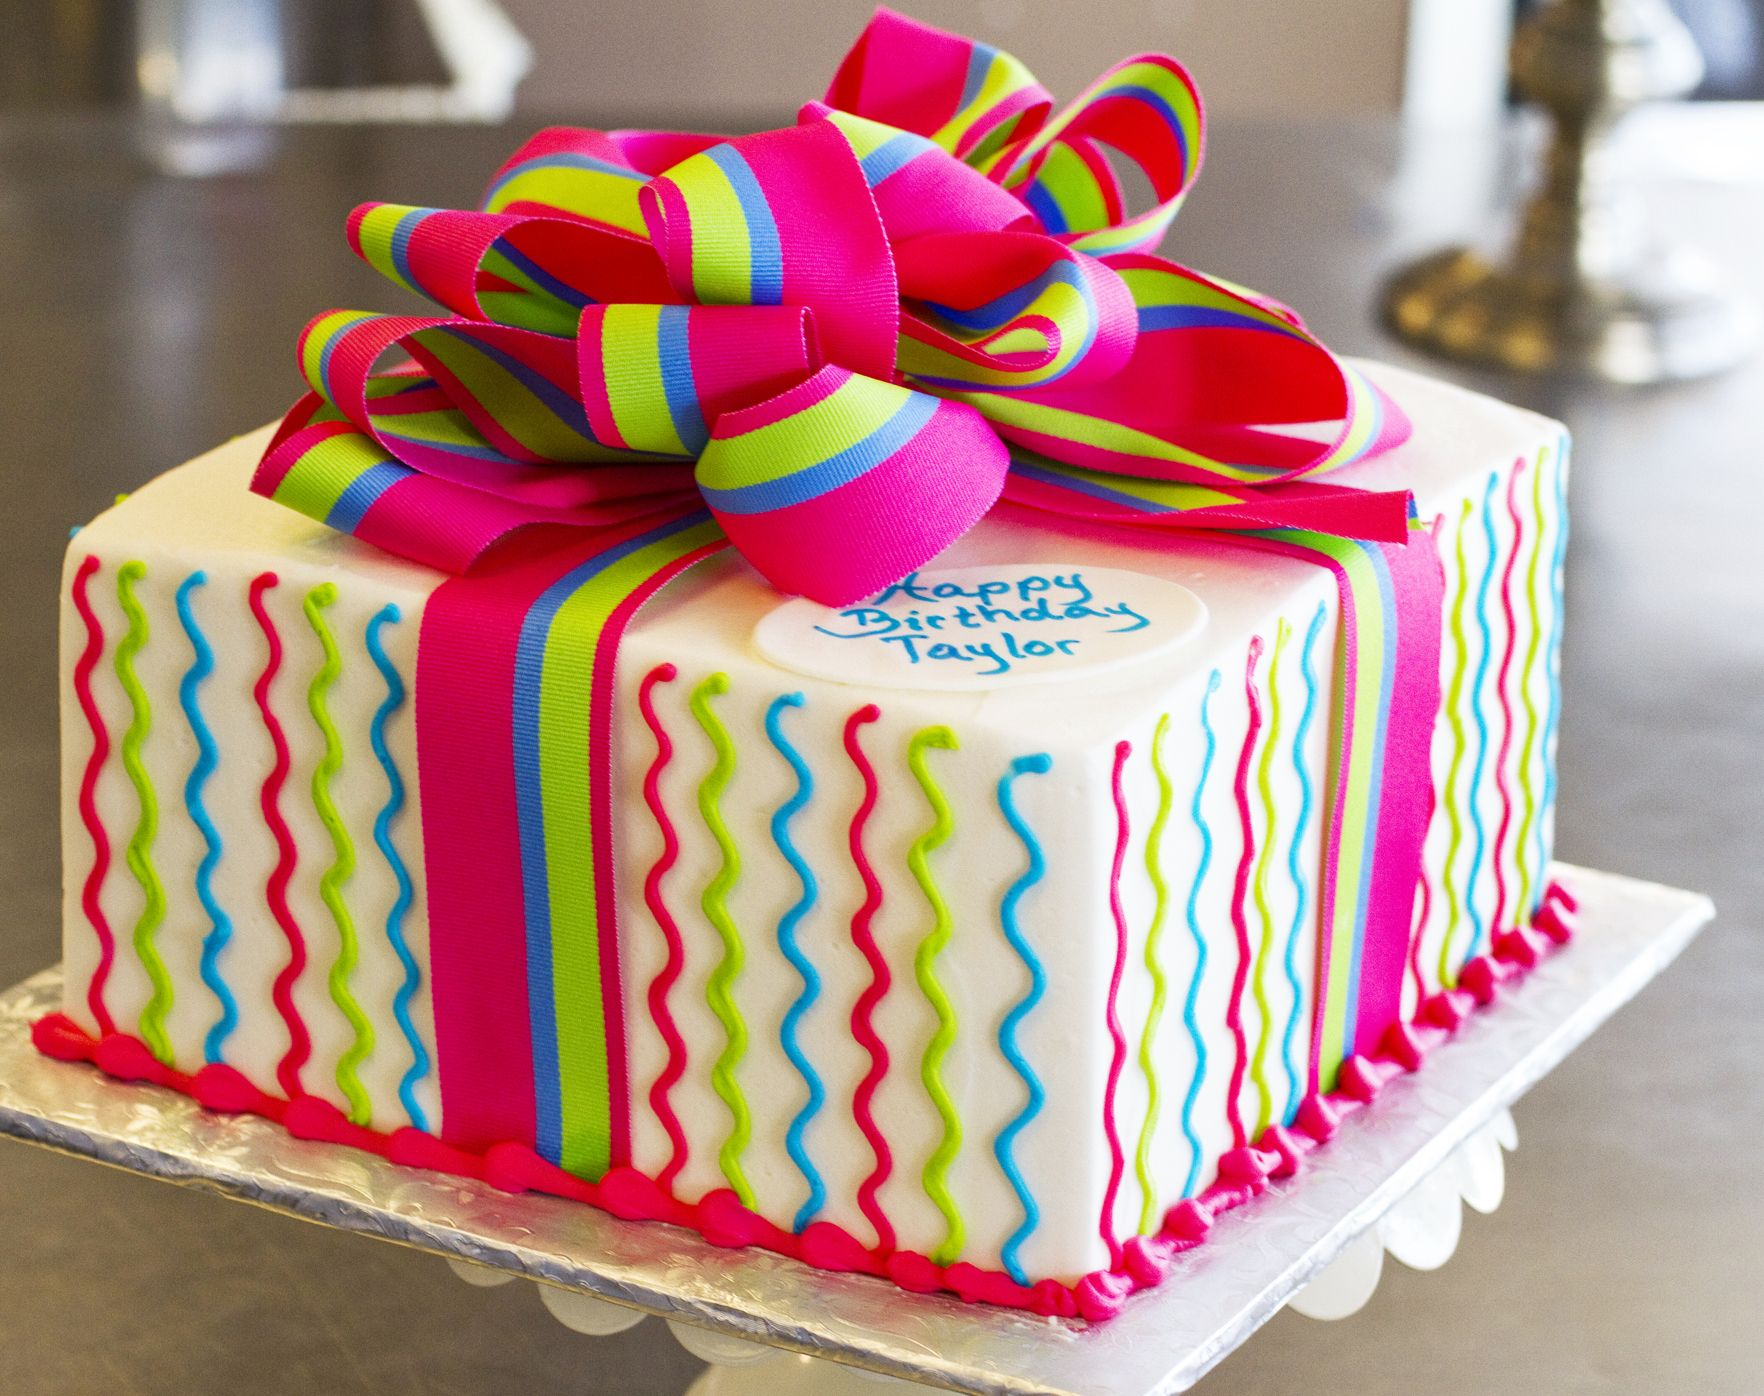 A lovely Dewey's gift box cake!